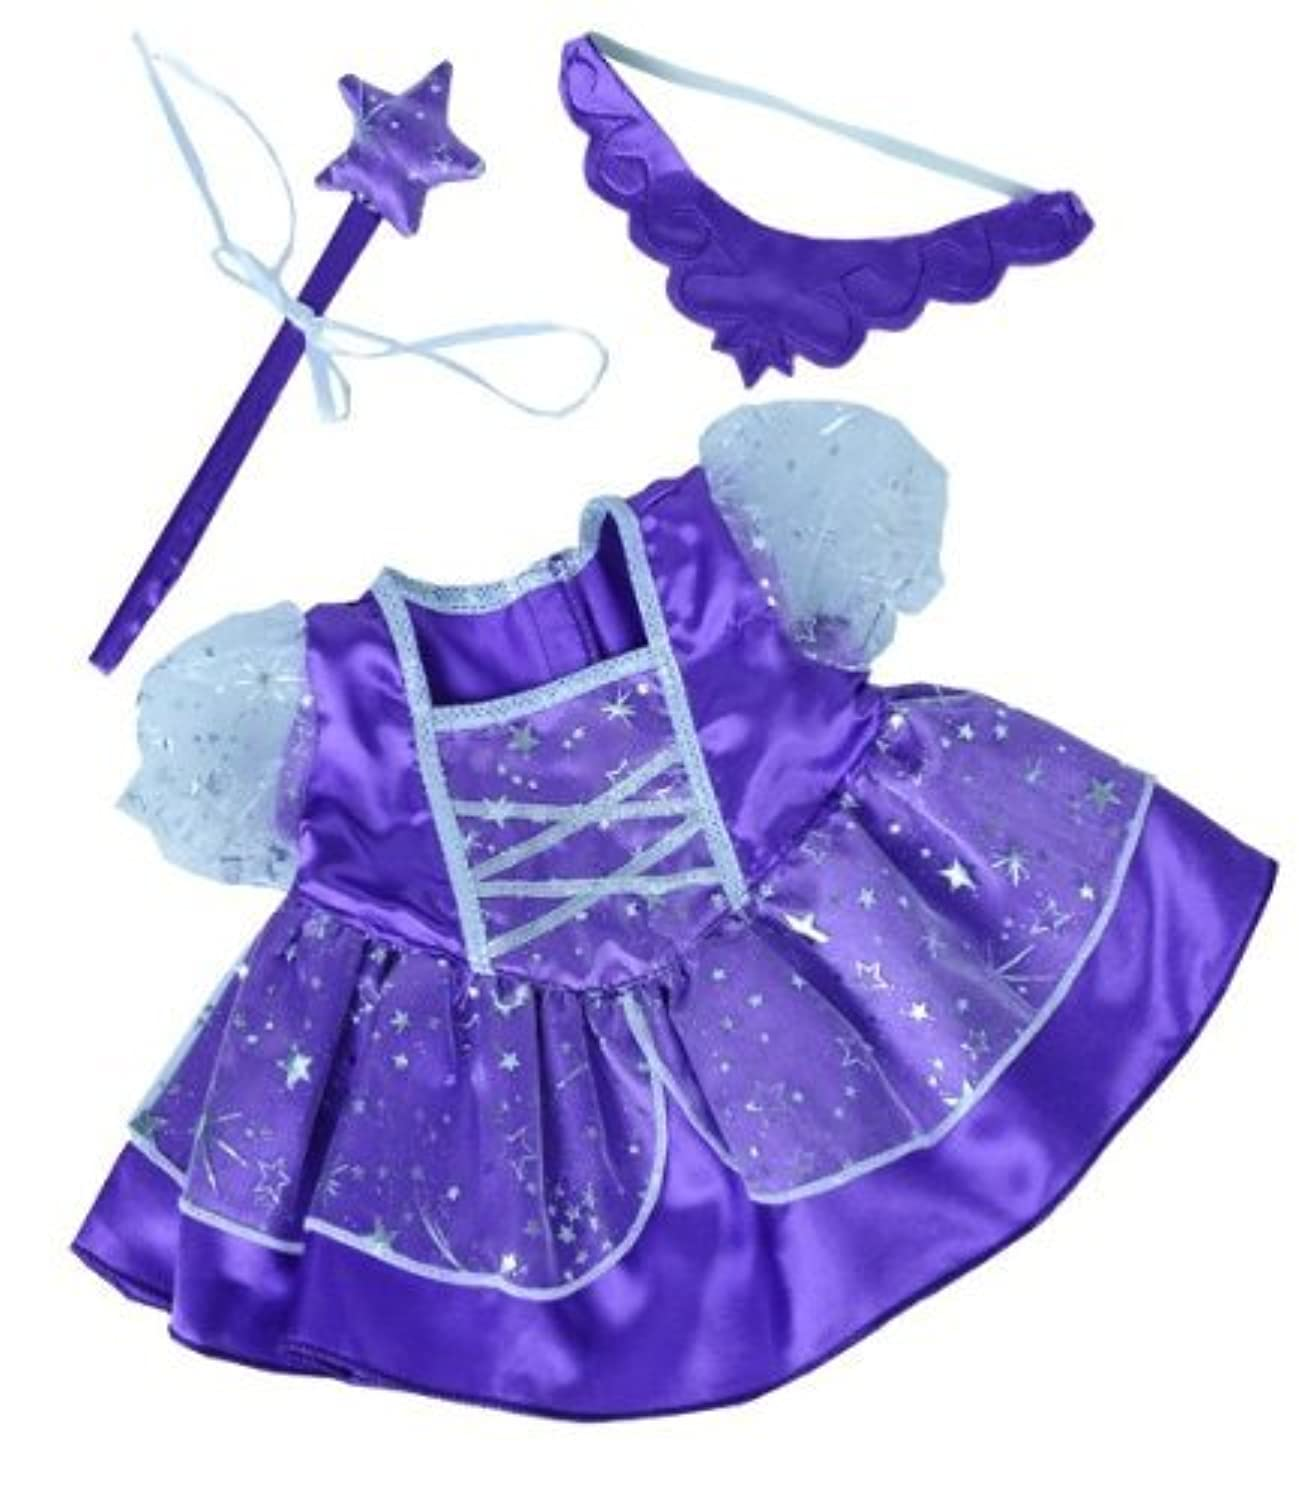 Purple Fairy Princess Dress w/Wand Teddy Bear Clothes Outfit Fits Most 14 - 18 Build-a-bear, Vermont Teddy Bears, and Make Your Own Stuffed Animals by Stuffems Toy Shop